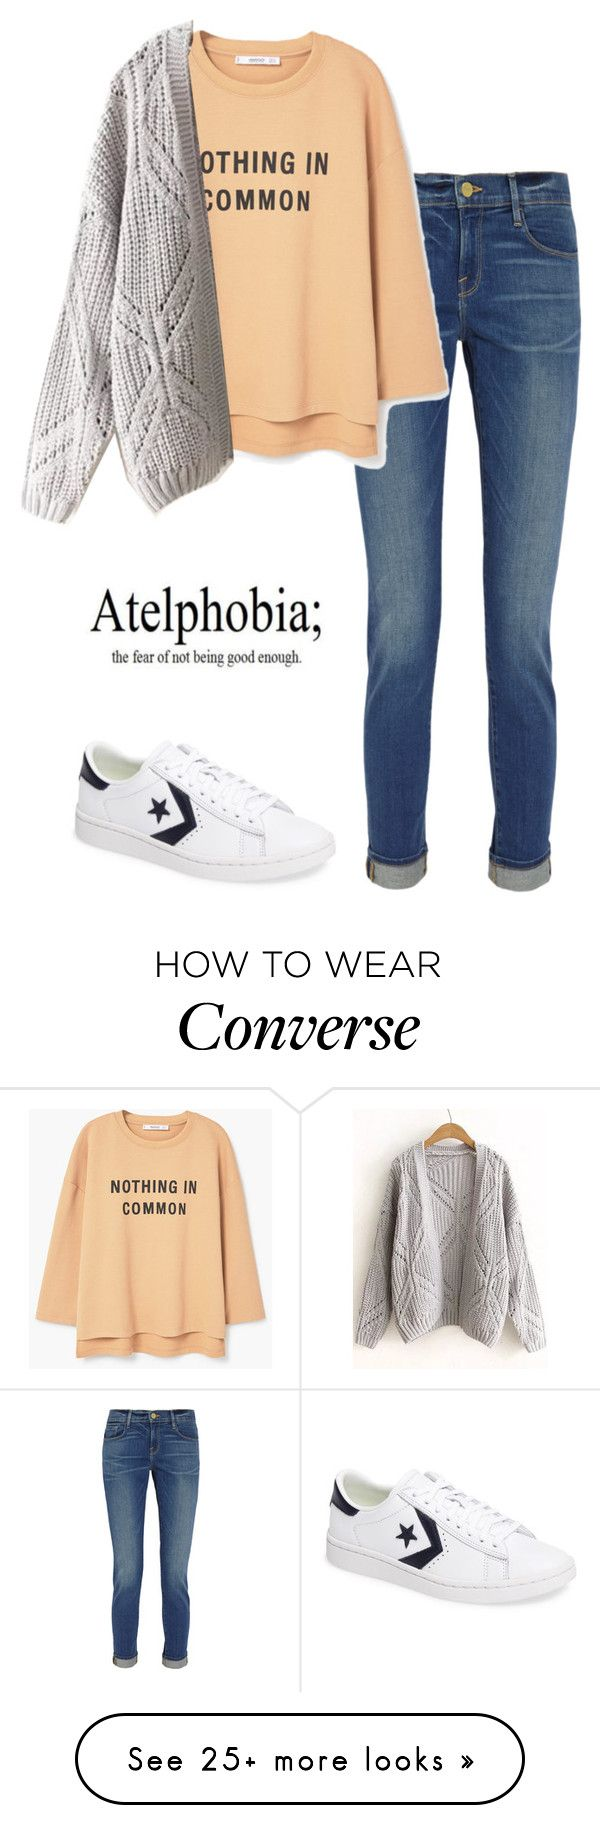 """1/3/2017"" by demibp on Polyvore featuring Frame, MANGO, WithChic and Converse"